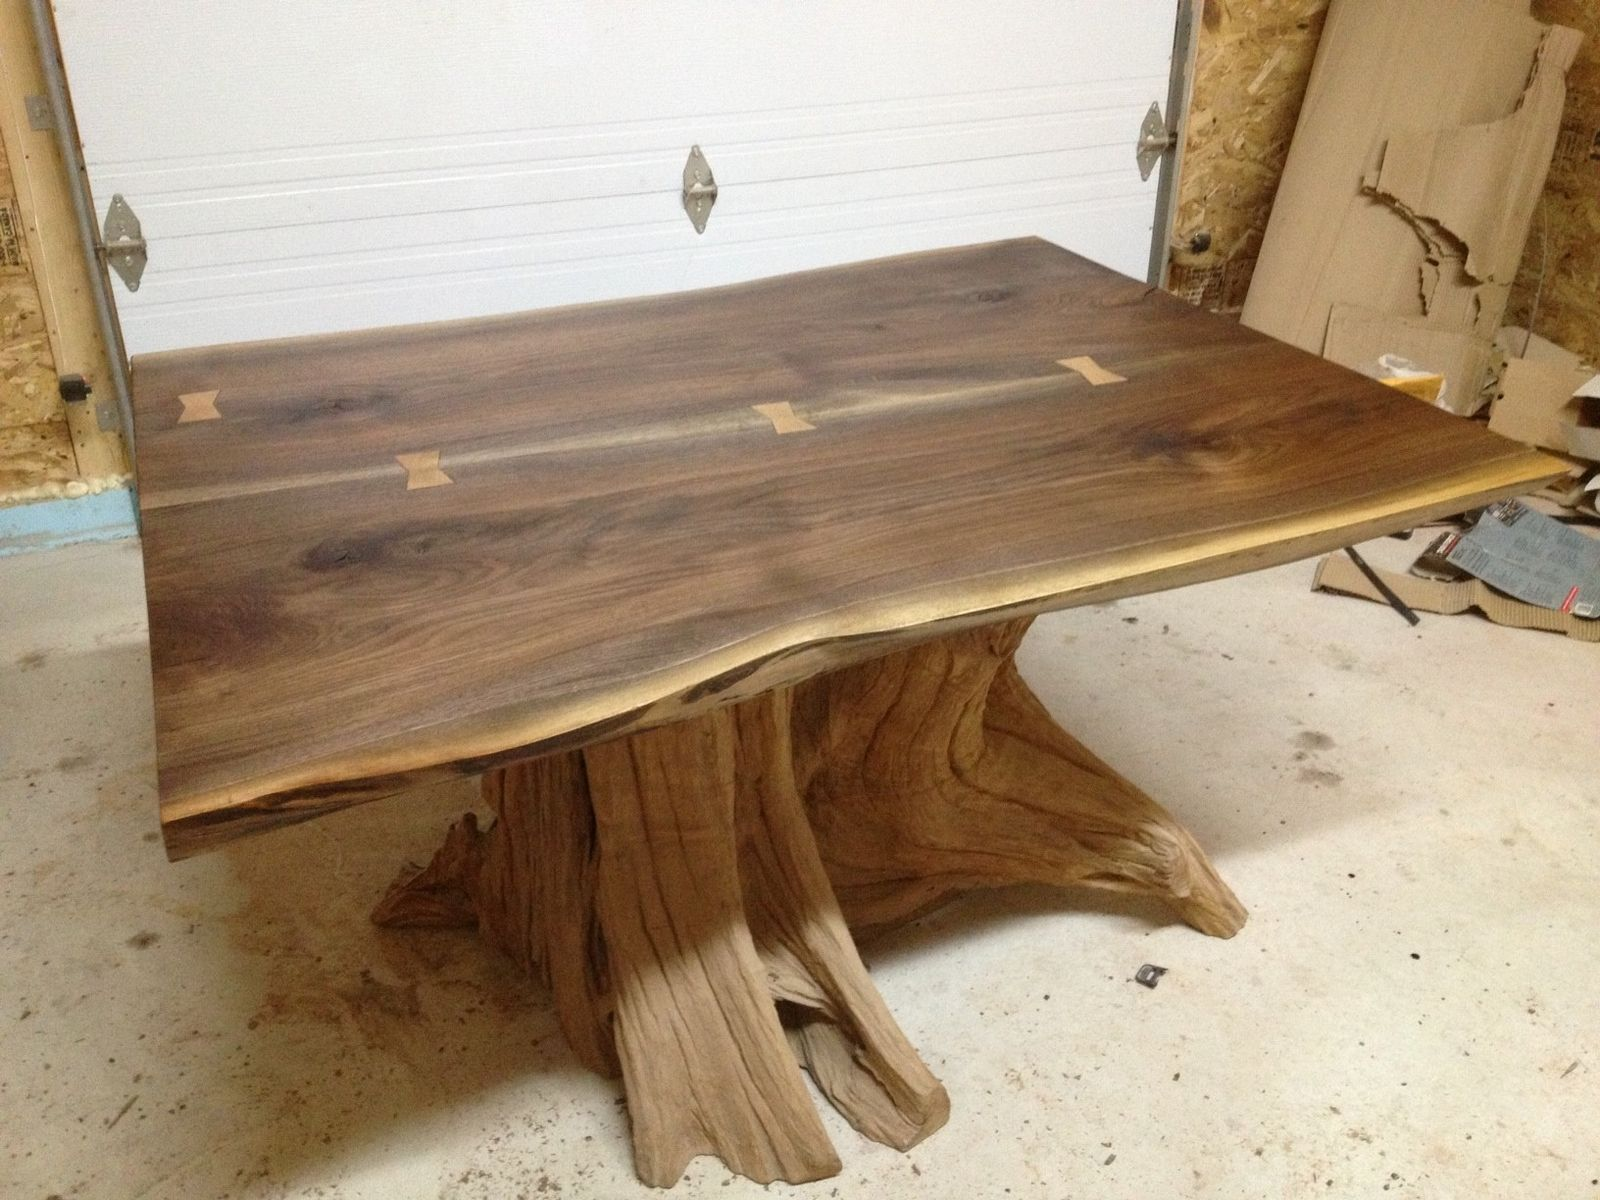 Hand Made Live Edge Black Walnut Dining Room Table by Bois  : 73252222449 from www.custommade.com size 1600 x 1200 jpeg 242kB